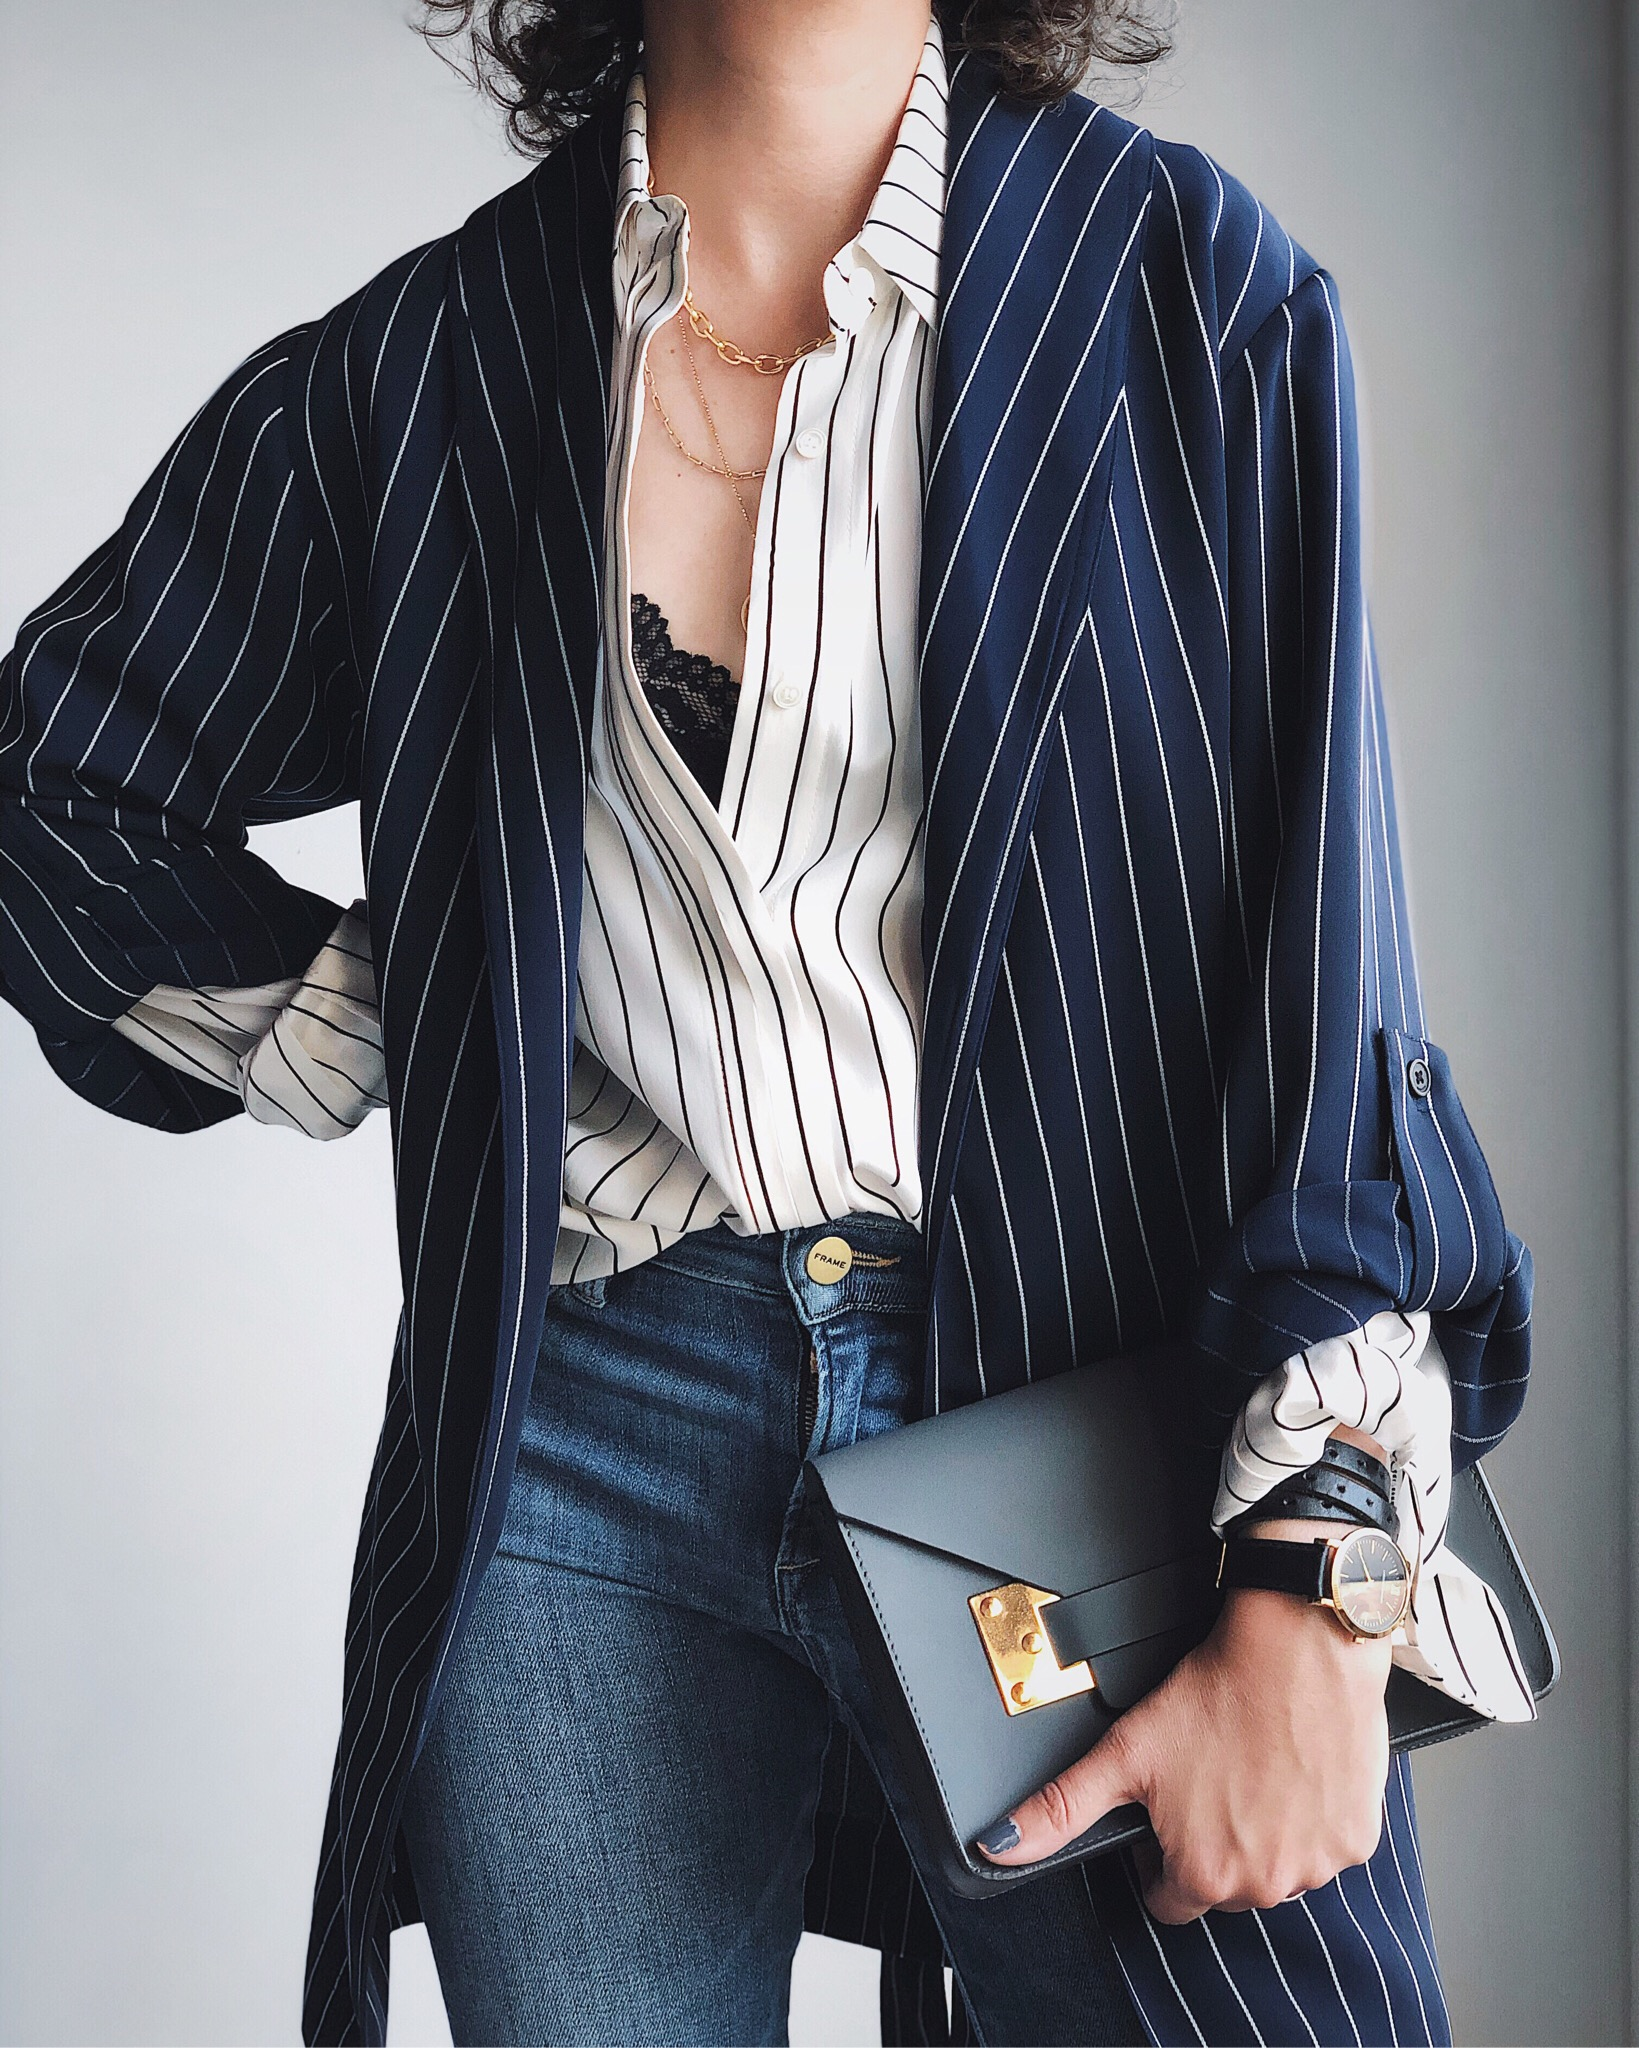 June 6th, 2019 – Vertical Stripes I'm Shopping